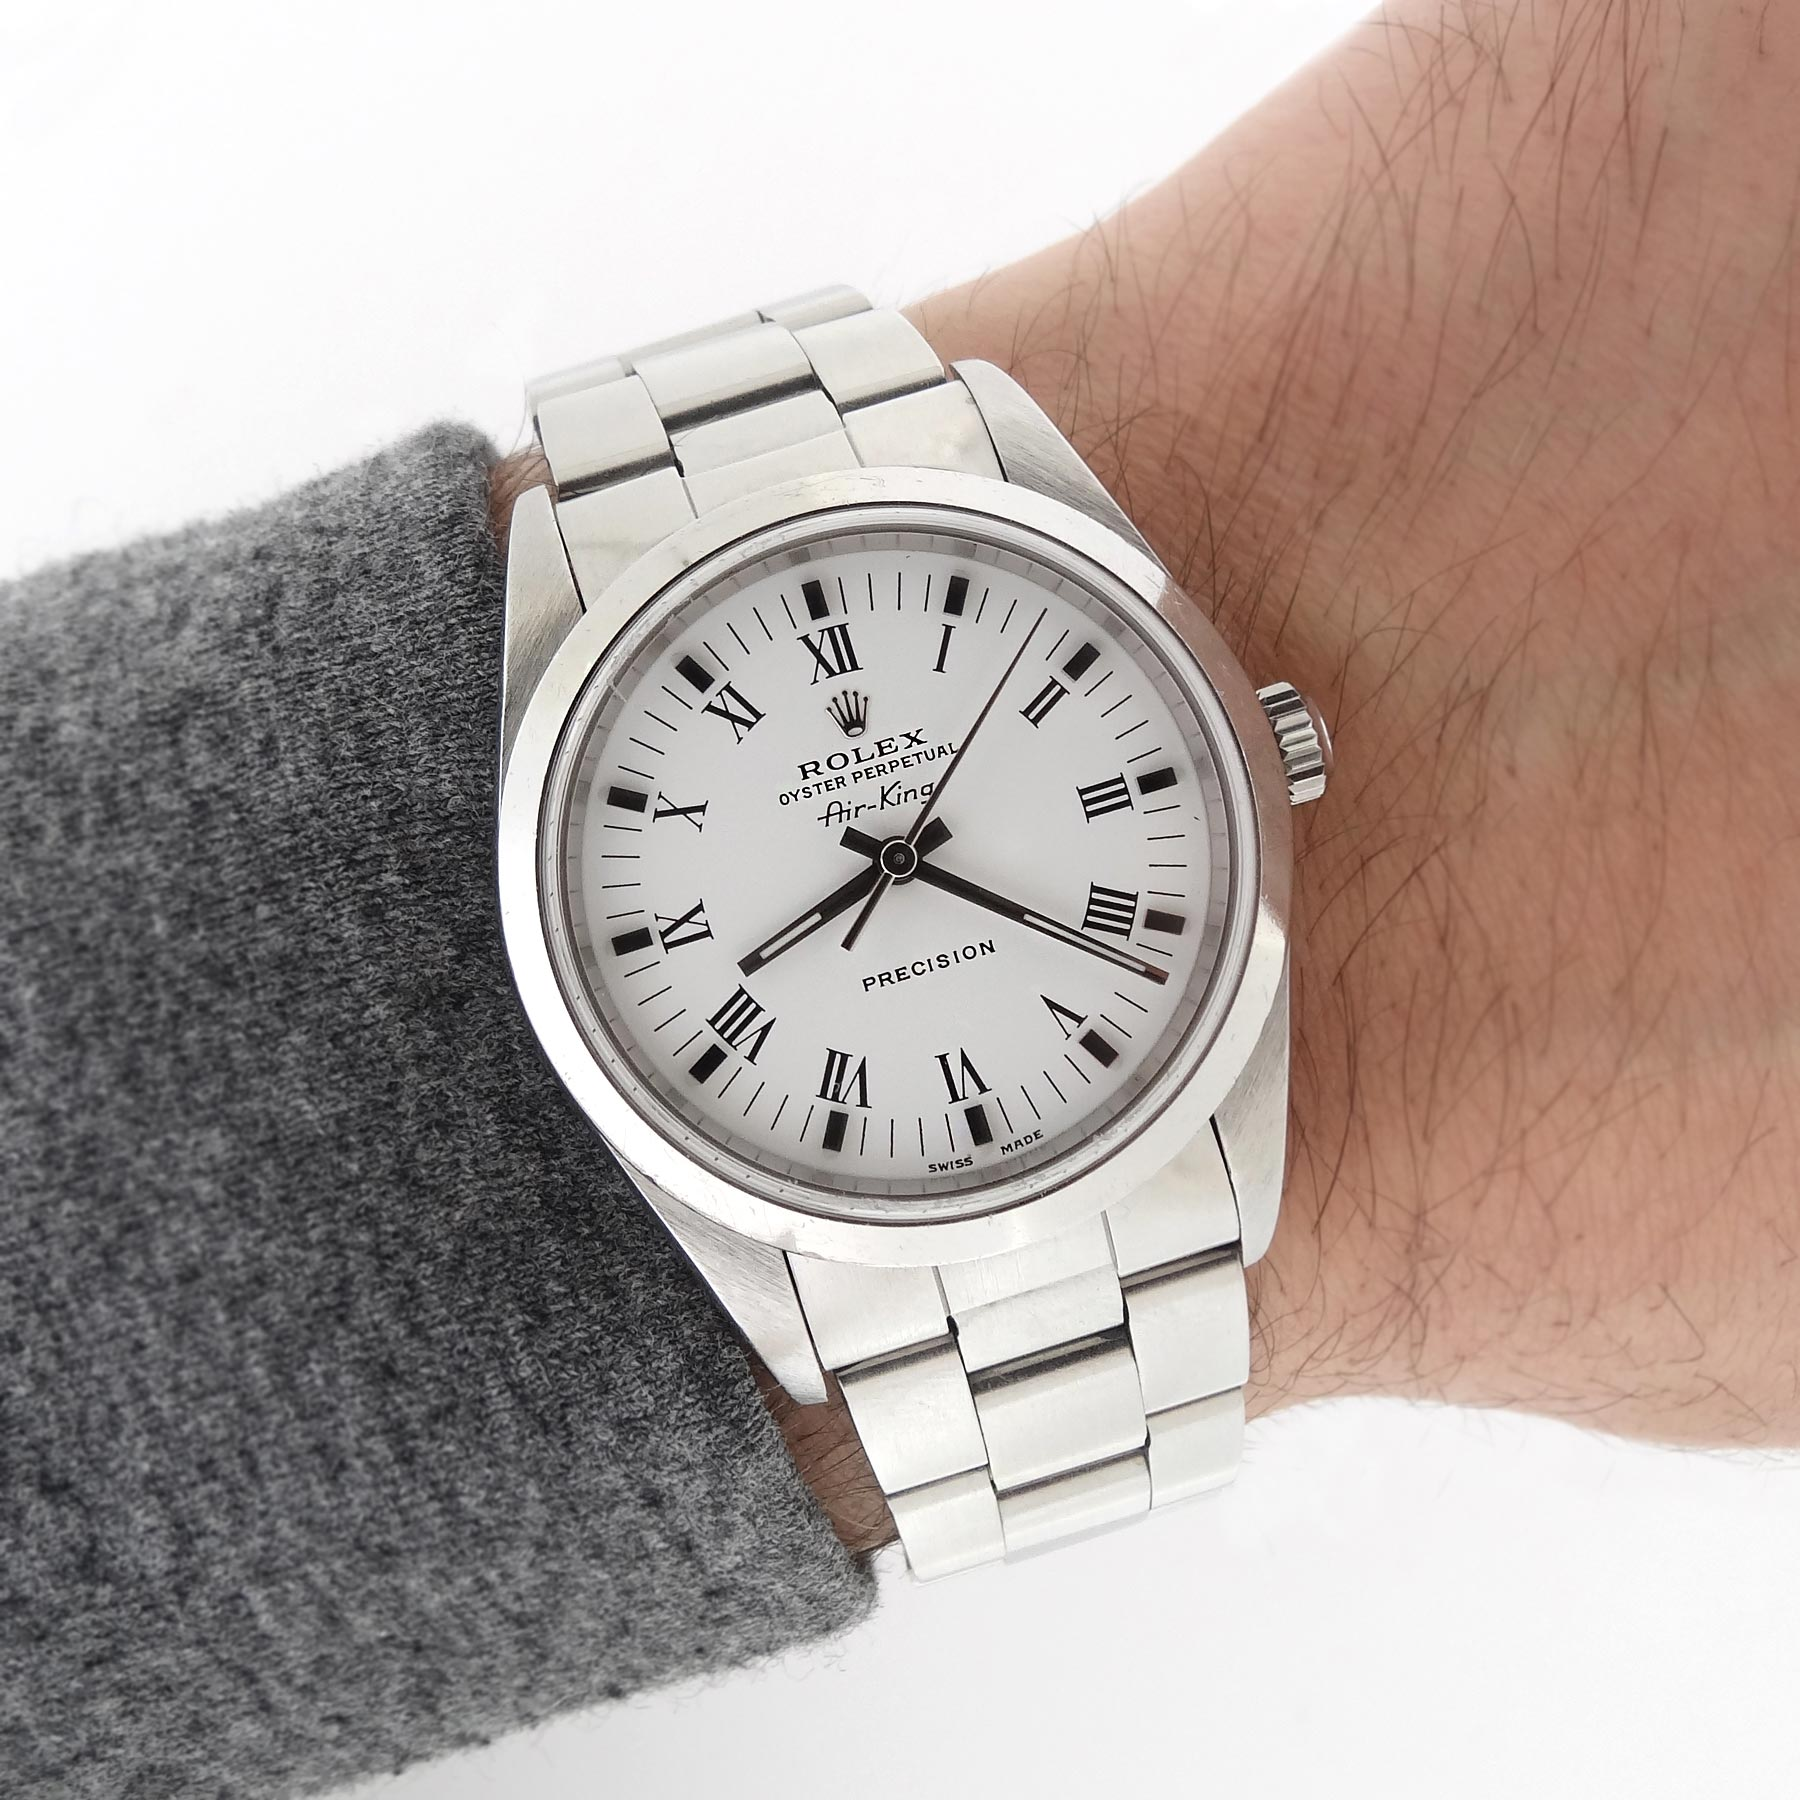 Rolex air king 14000 precision white roman dial luxury watch 717449286079 ebay for Rolex air king